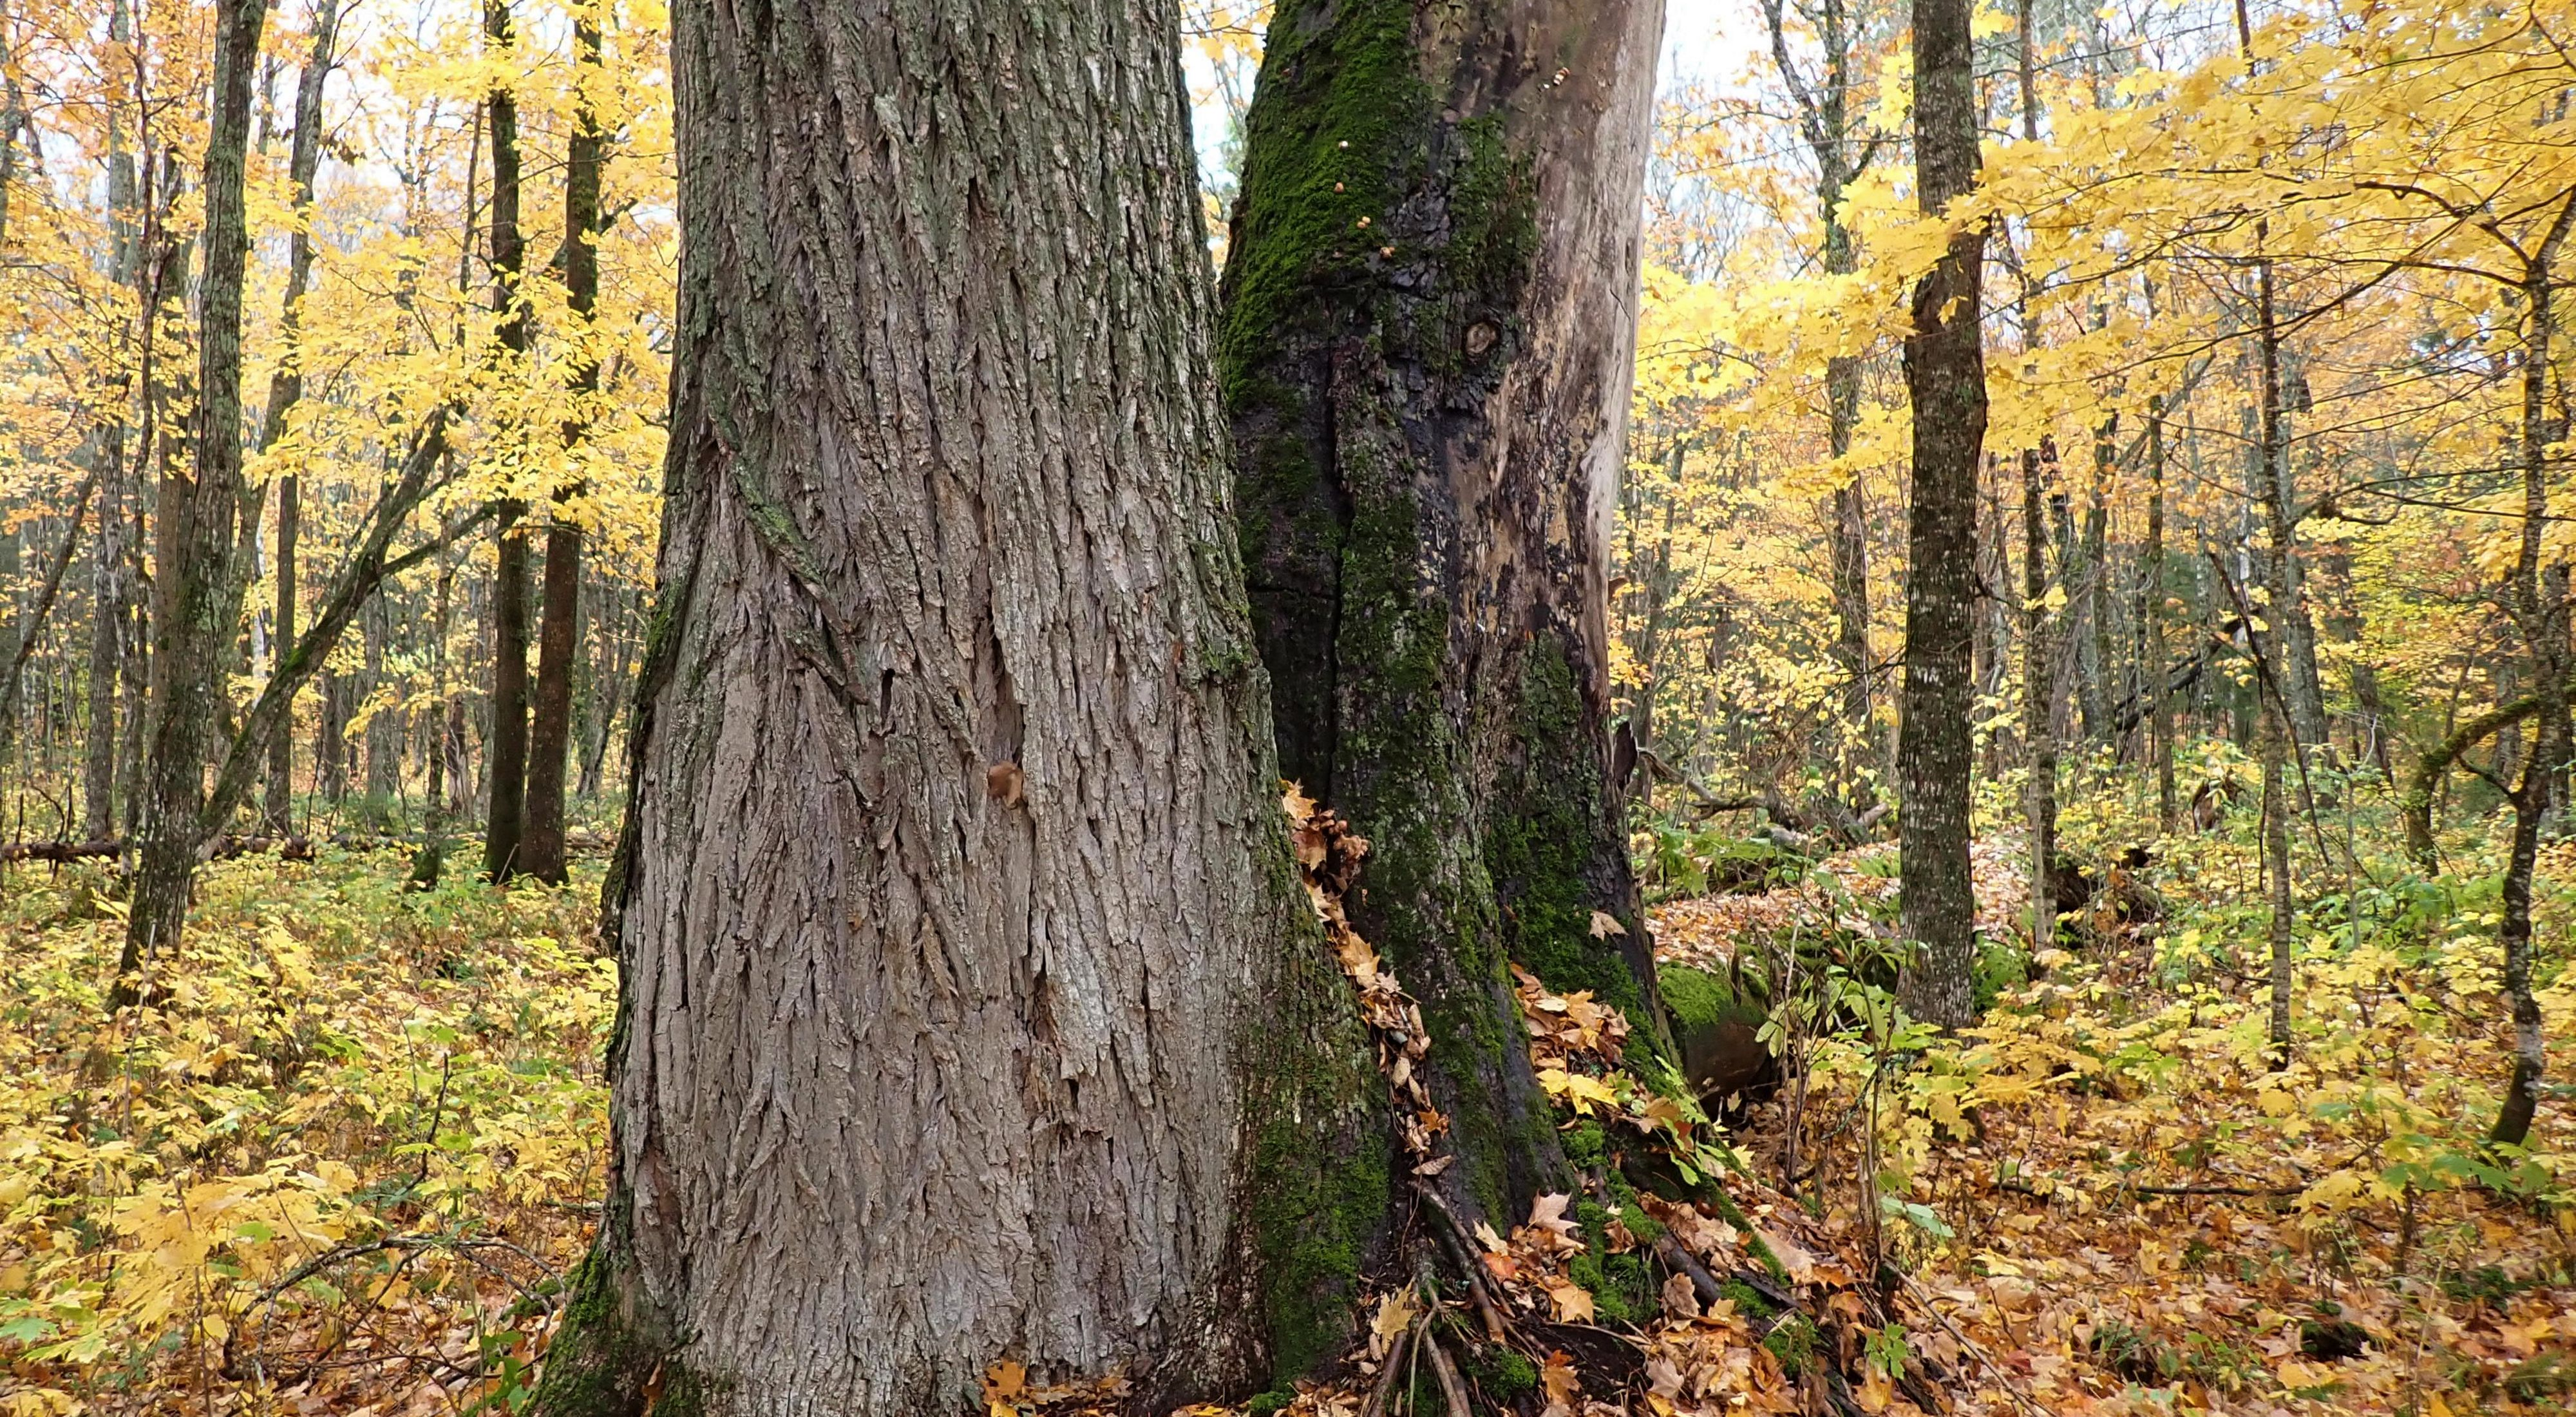 The lower trunk of a large elm tree stands in a forest backed by yellow autumn leaves.